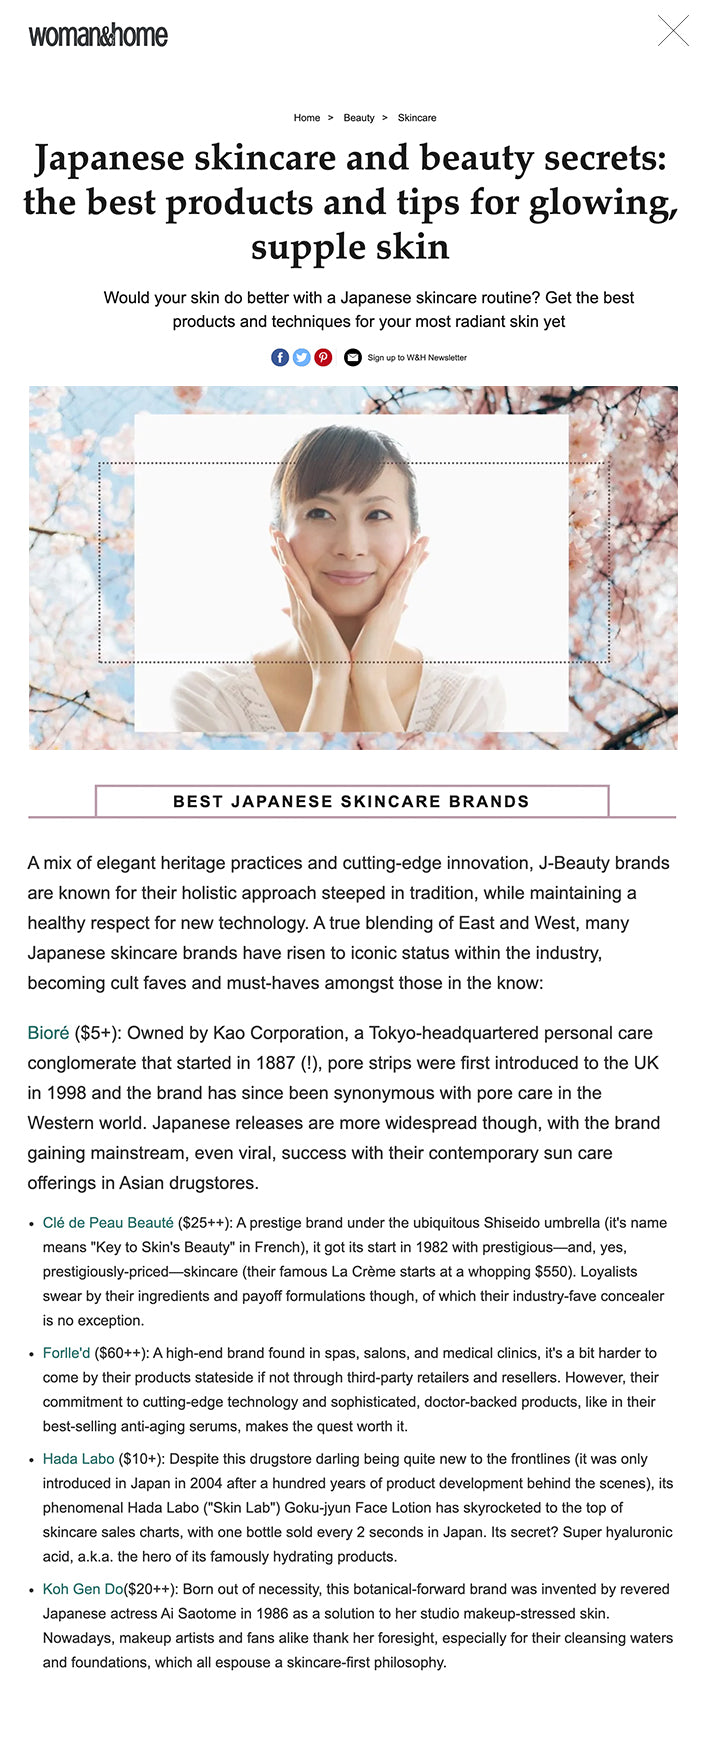 """JUMP TO CATEGORY: Japanese skincare ingredients Japanese skincare secrets Best Japanese skincare products Best Japanese skincare brands  Brittany Leitner BY BRITTANY LEITNER , EUNICE LUCERO-LEE MAY 05, 2021  Over the last decade, Japanese skincare has made its way more and more into everyday Western regimens. With a focus on a multi-step routine, lighter formulations (essences, """"lotions""""), and an emphasis on a gentle, layered approach to hydration, J-Beauty has long taken the world by storm. These are only some of the hallmarks of their particular take on skincare, however, that a lot of us may already be familiar with in our own routines.  What makes it different from the rest? To find out what makes Japanese skincare secrets so effective, as well as how they vary from typical Western practices, woman&home spoke with Elizabeth McCarron and Kat Buckley, skincare experts and members of The Skin Collaborative. They offer insight on how to incorporate these practices into your routine, as well as why exactly a Japanese skincare approach sets itself apart from the rest.   WHAT GOES INTO A JAPANESE SKINCARE ROUTINE? According to Elizabeth, the Japanese skincare approach is all about caring for the skin as a whole, like the vital organ that it is—whereas the Western approach focuses on correcting a certain skin problem, like redness, oily skin, or rosacea. The Japanese """"prioritize recreating the ideal conditions for its function, for example, by regulating the electrolytes in and out of the cell, making sure amino acids, microelements, or vitamin deficiencies are corrected in the first place,"""" Elizabeth says. """"And only then will they address 'local' problems, such as pigmentation or acne,"""" she adds.   Kat agrees: """"Japanese skincare takes on a luxurious but rather more simple approach to your skin, focusing on cleansing oils, gentle exfoliation, and lightweight essences to hydrate and nourish.""""  RECOMMENDED VIDEOS FOR YOU... CLOSE JAPANESE SKINCARE: BEAUTY SECRETS AND TECH"""